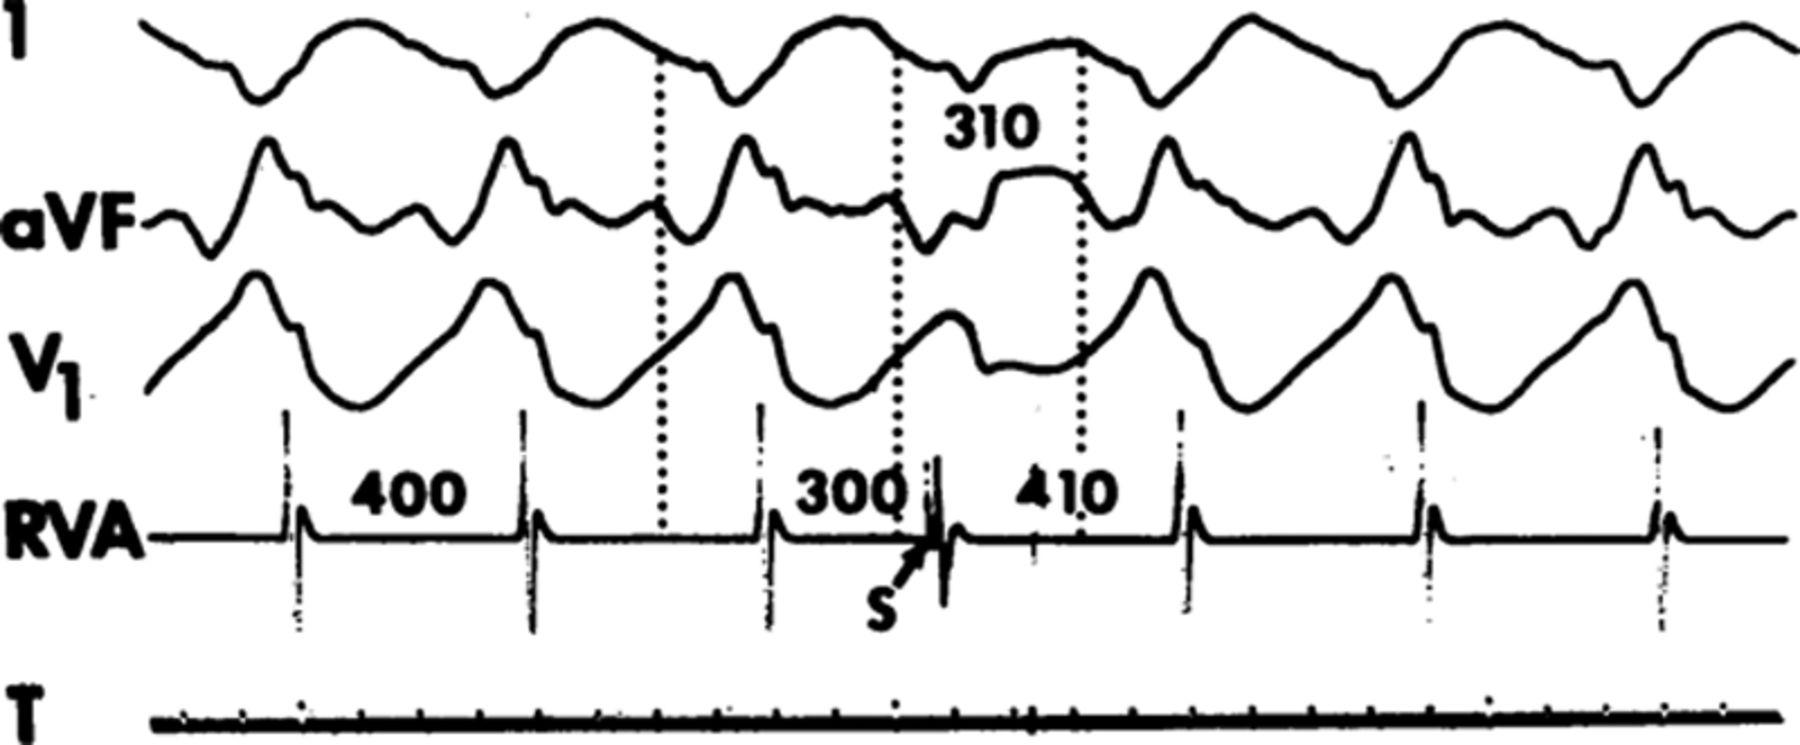 Conquest of Ventricular Tachycardia: Insights Into